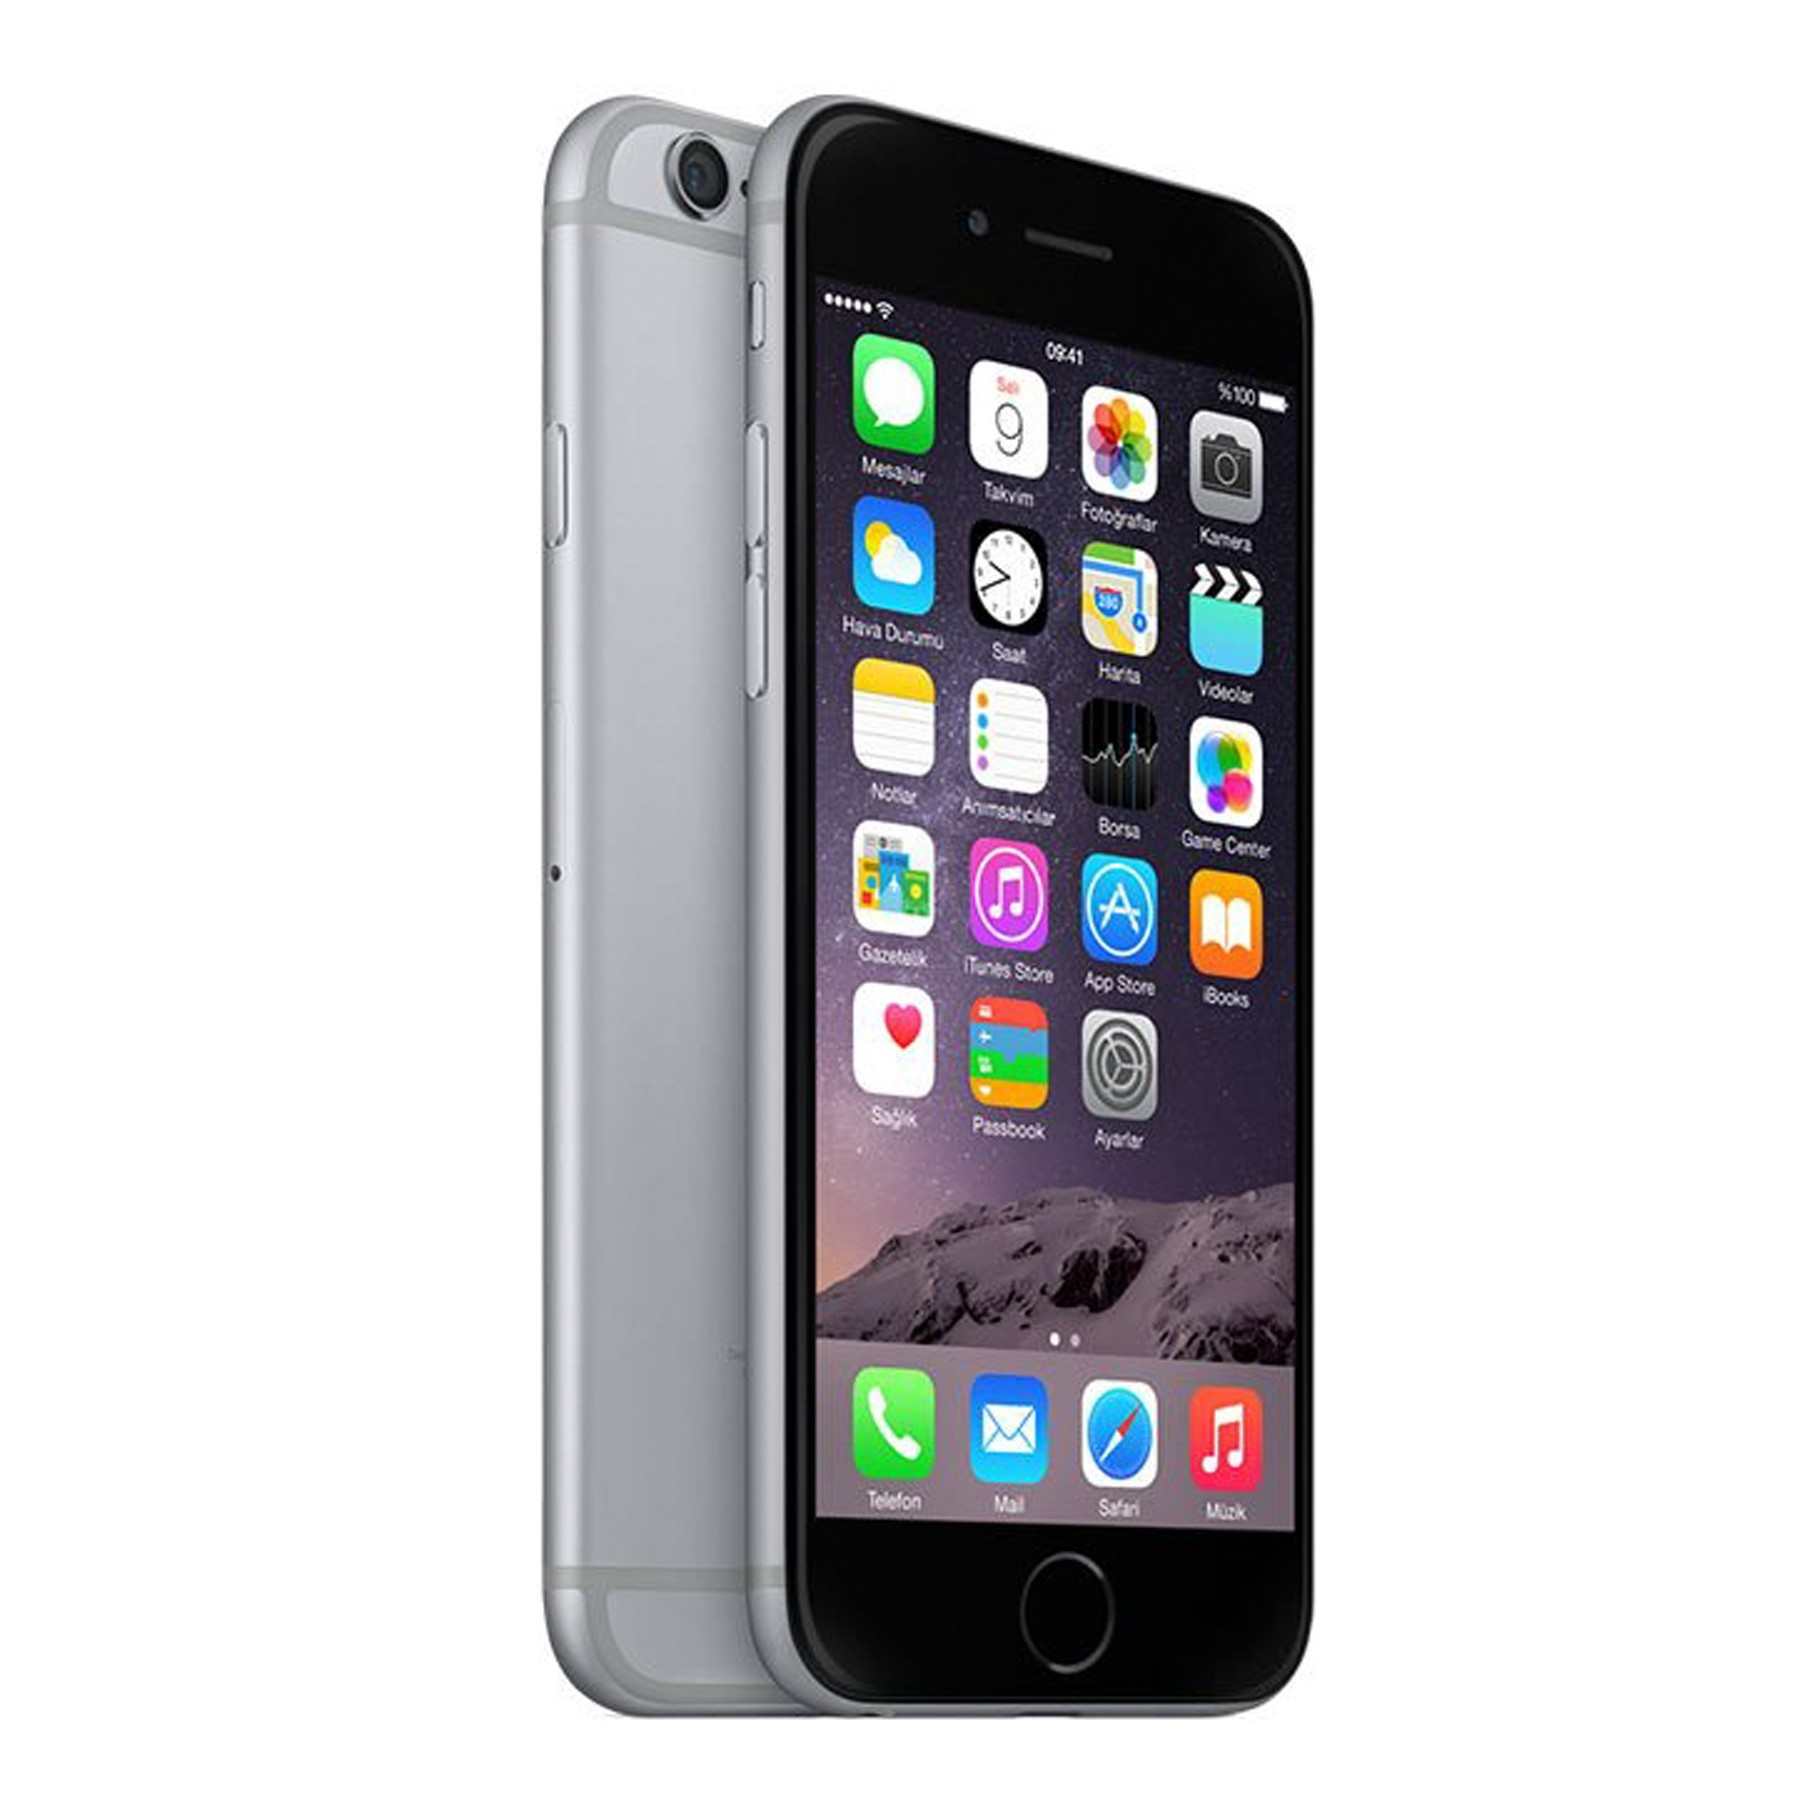 iPhone 6 Plus 64G Space Gray Ảnh số 38368054